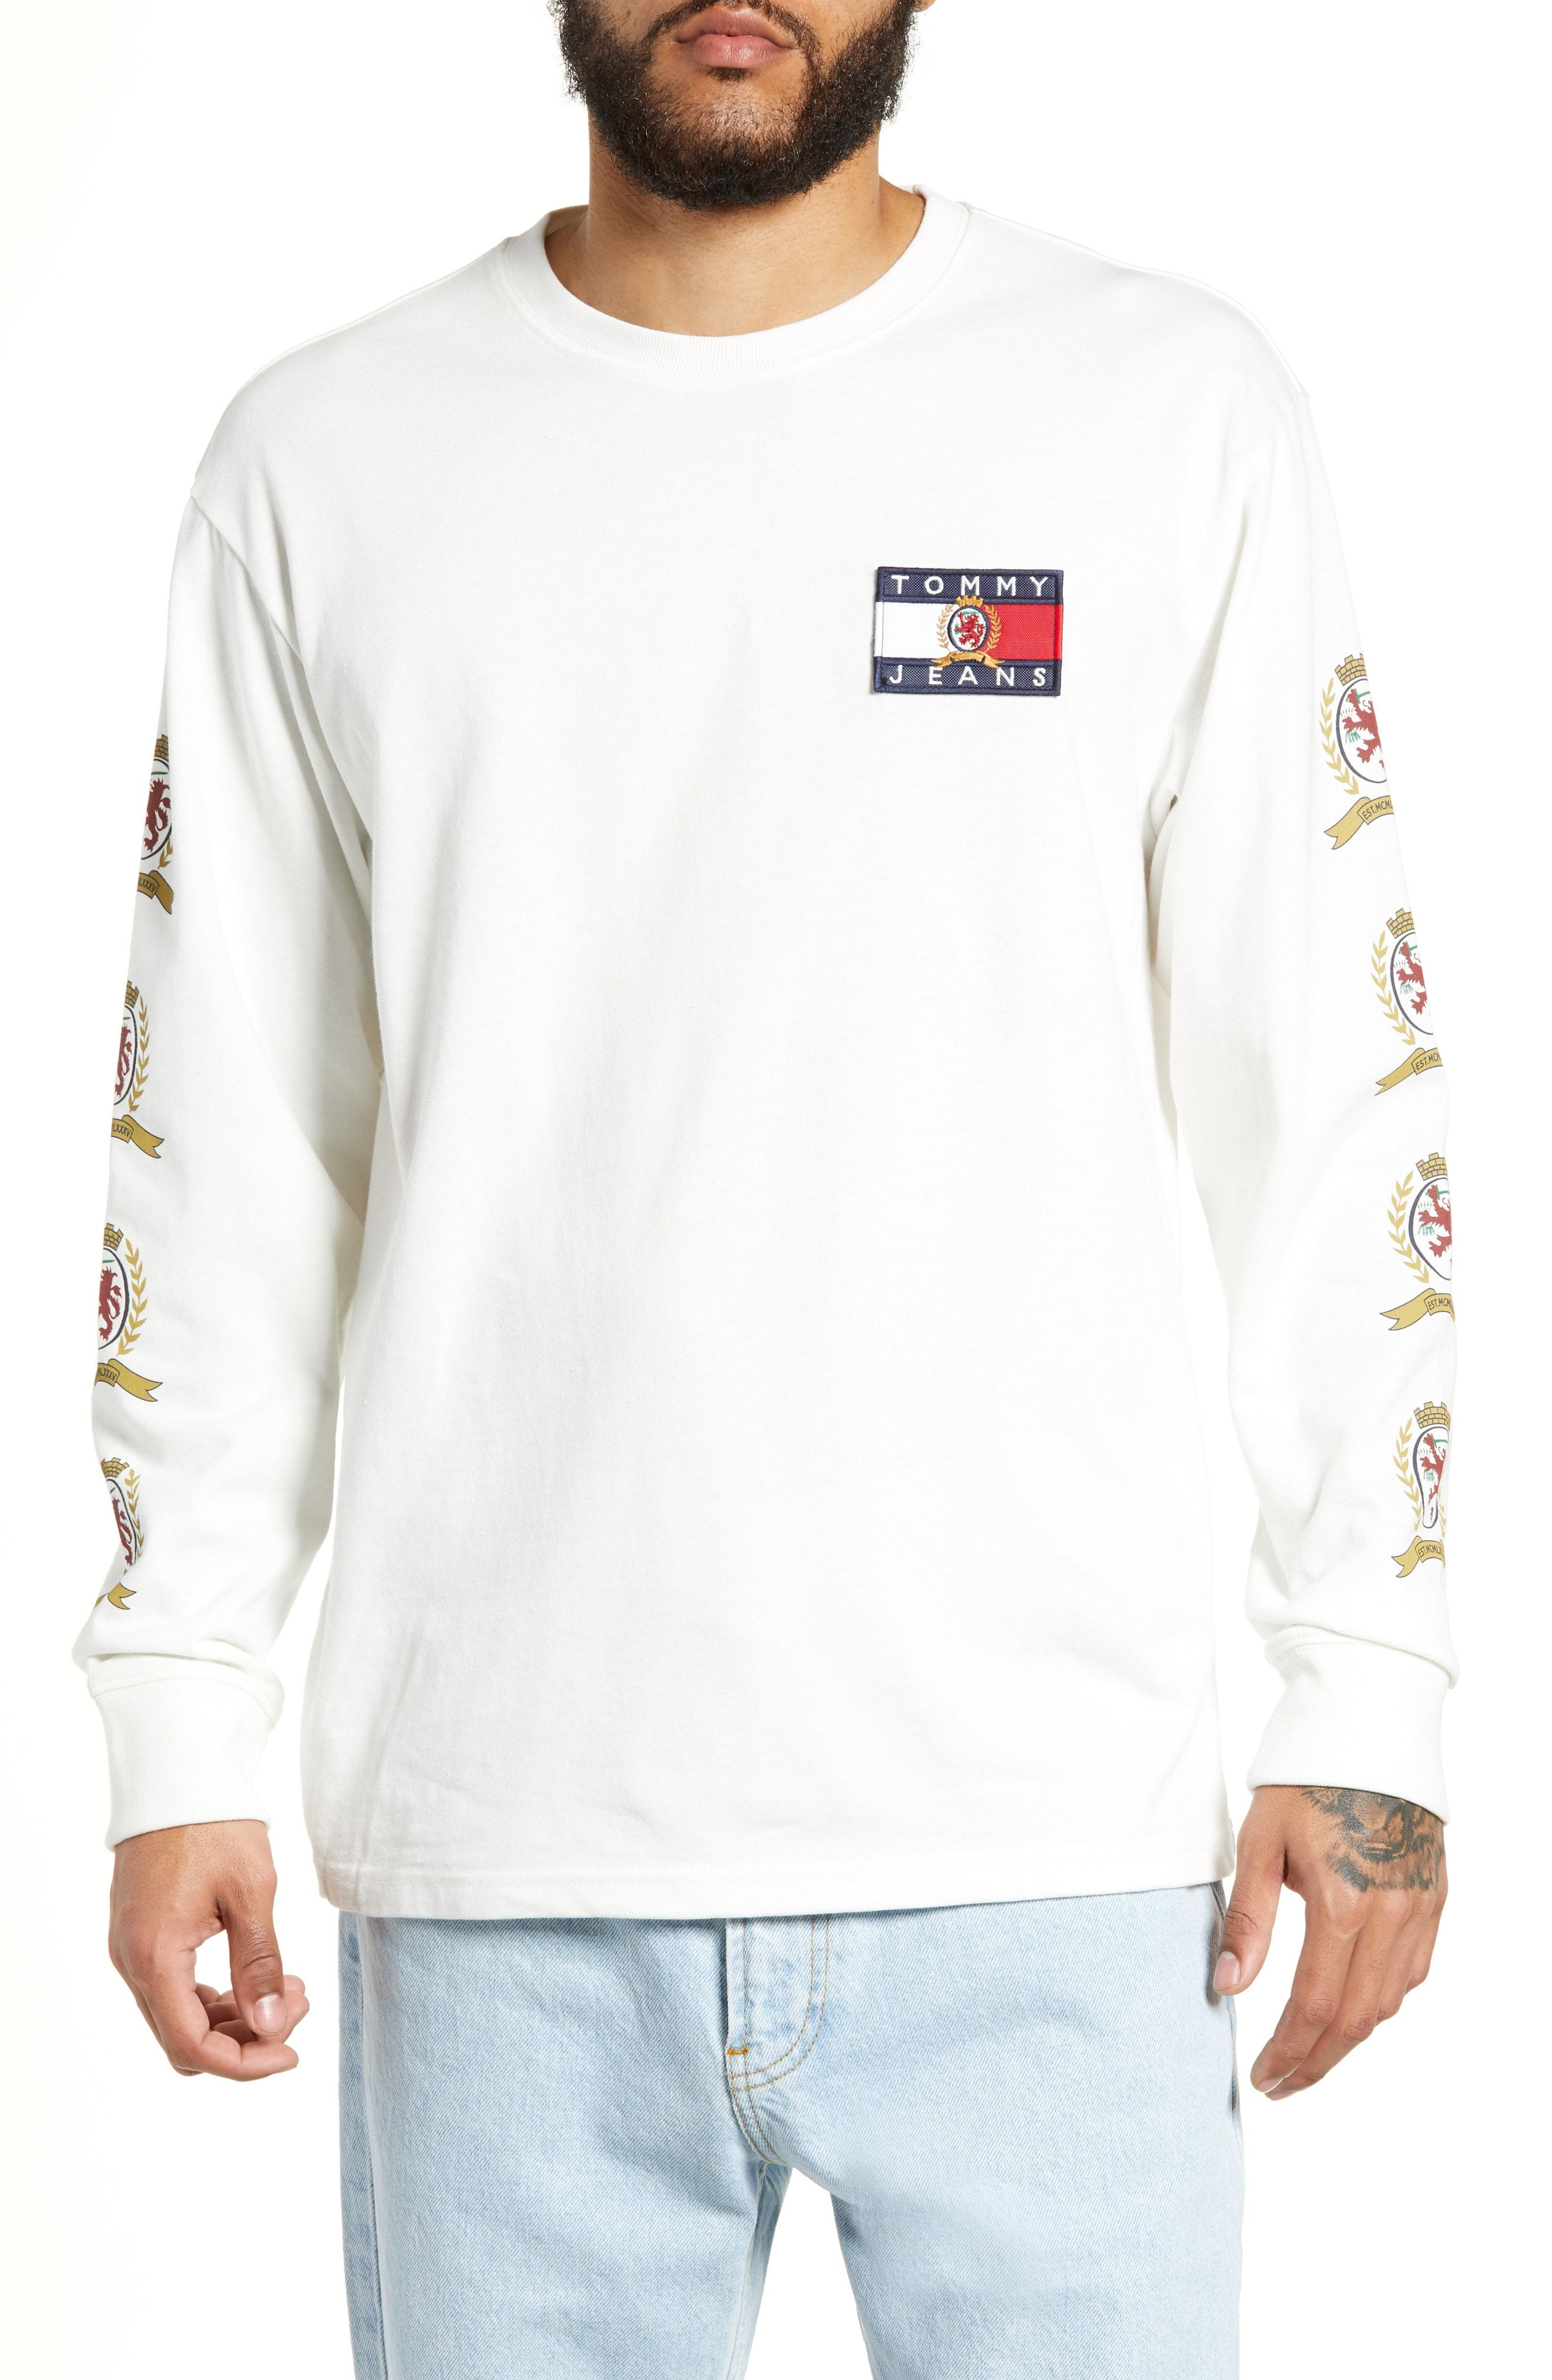 8a6f3199 TOMMY JEANS CREST LOGO LONG SLEEVE T-SHIRT. #tommyjeans #cloth ...